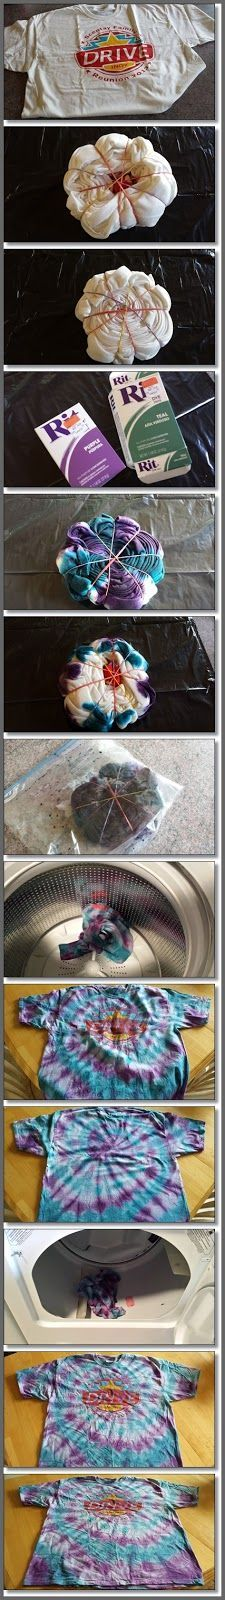 How to Tie Dye a Spiral Shirt in 9 steps!